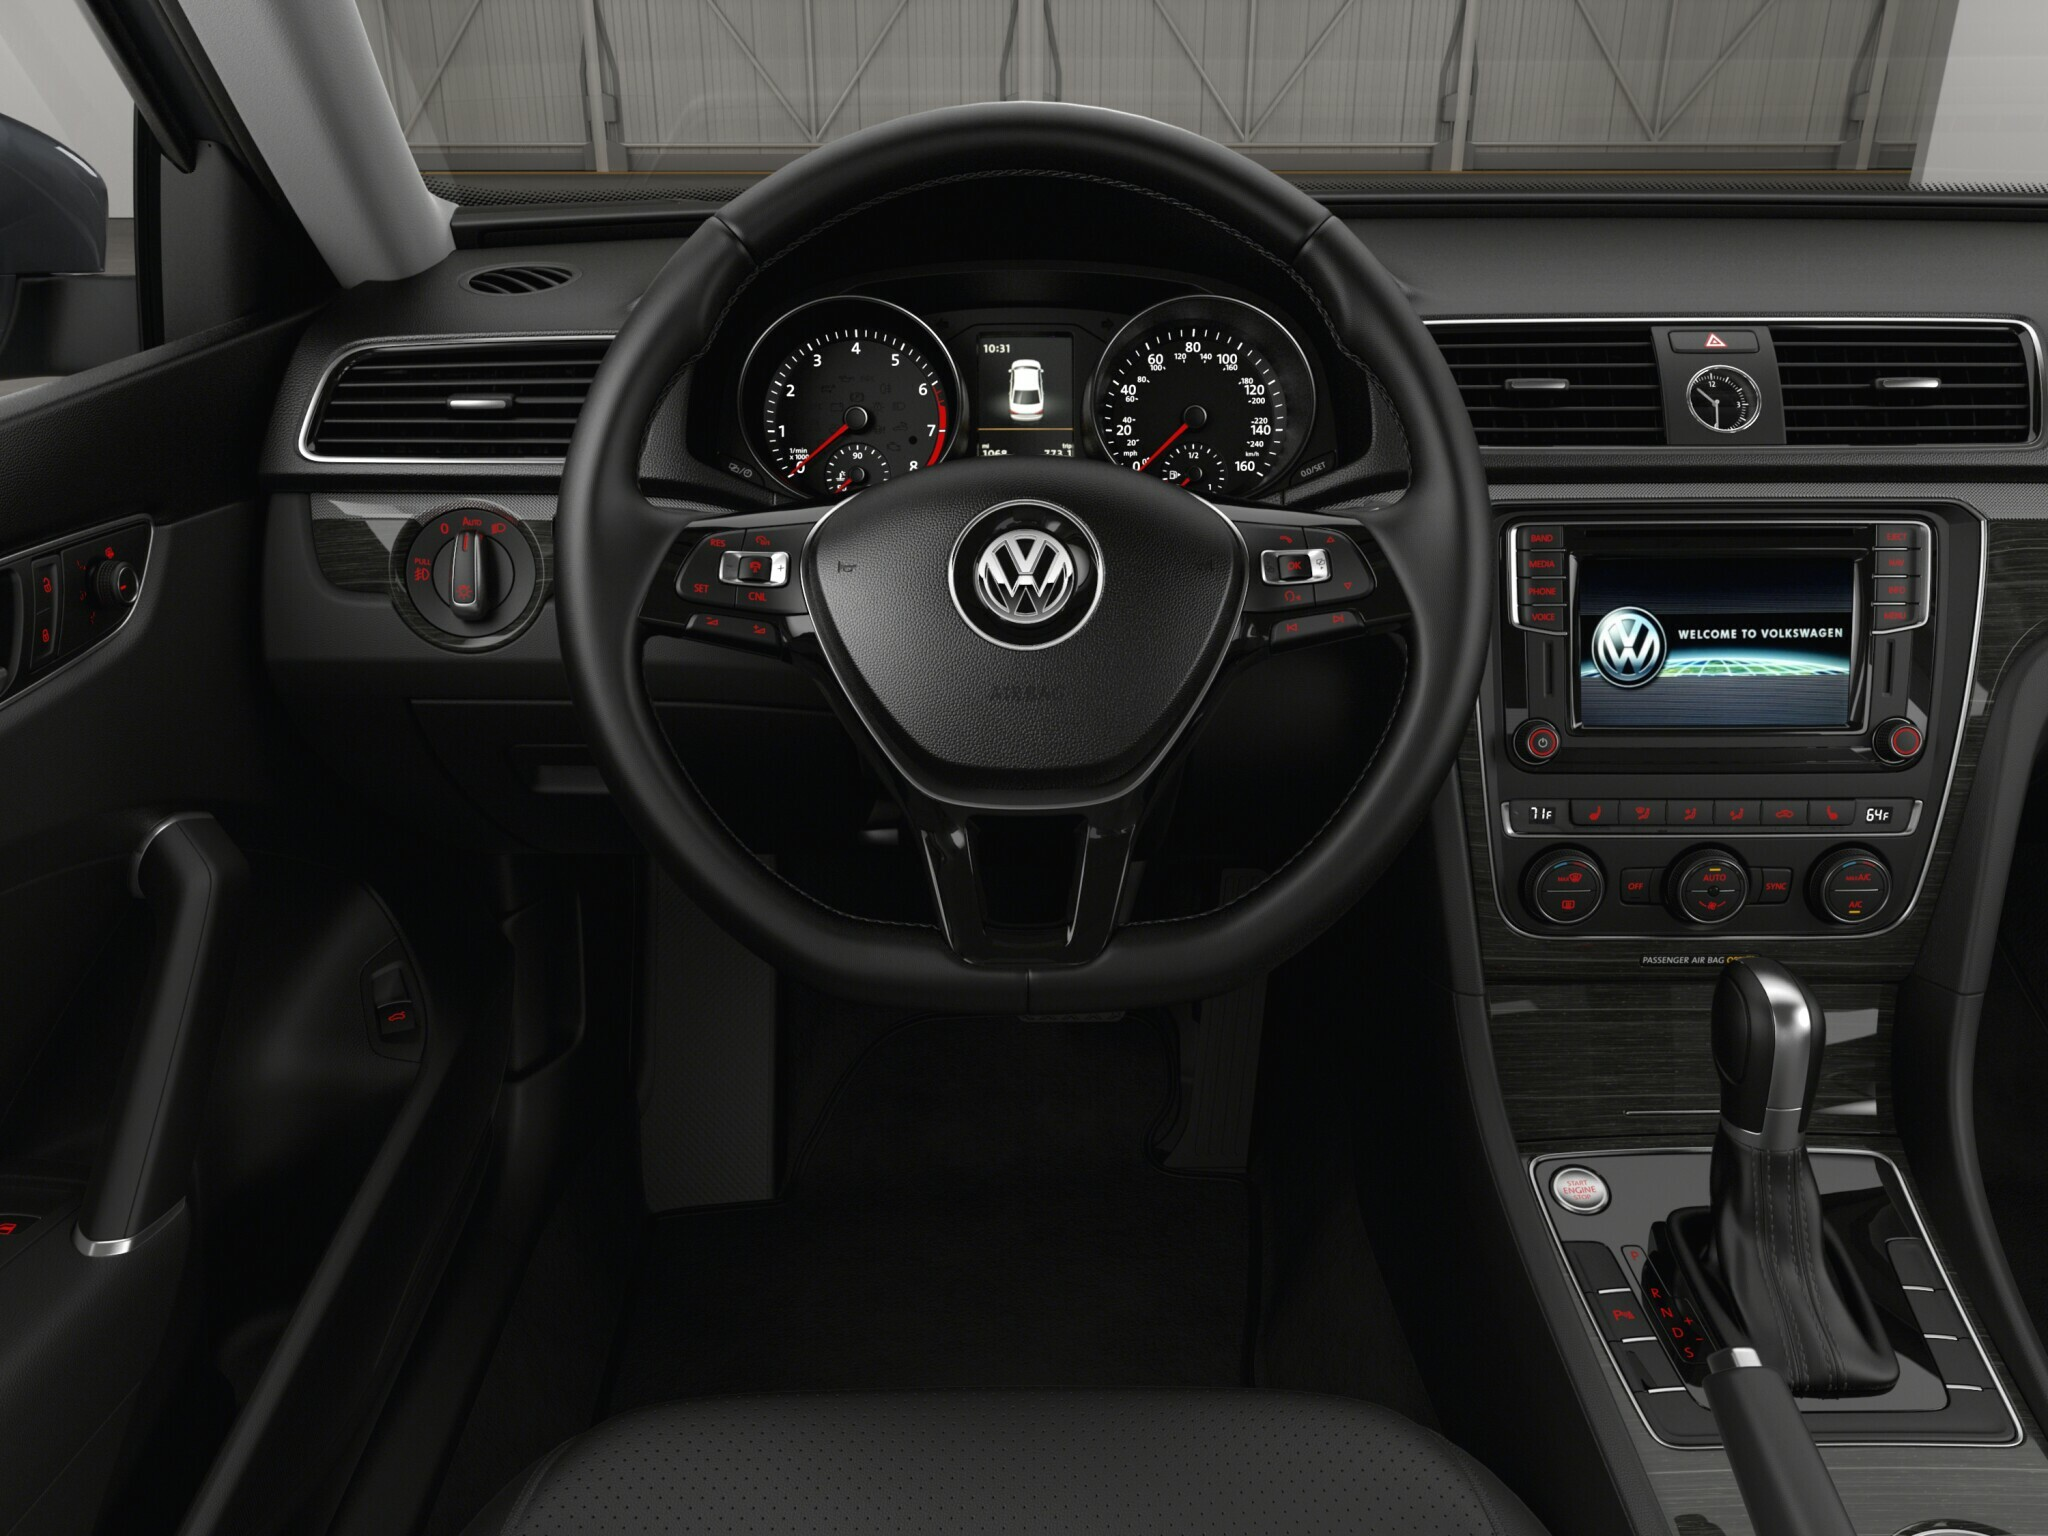 2017 Vw Pat 1 8t Se W Technology Trim Features Volkswagen